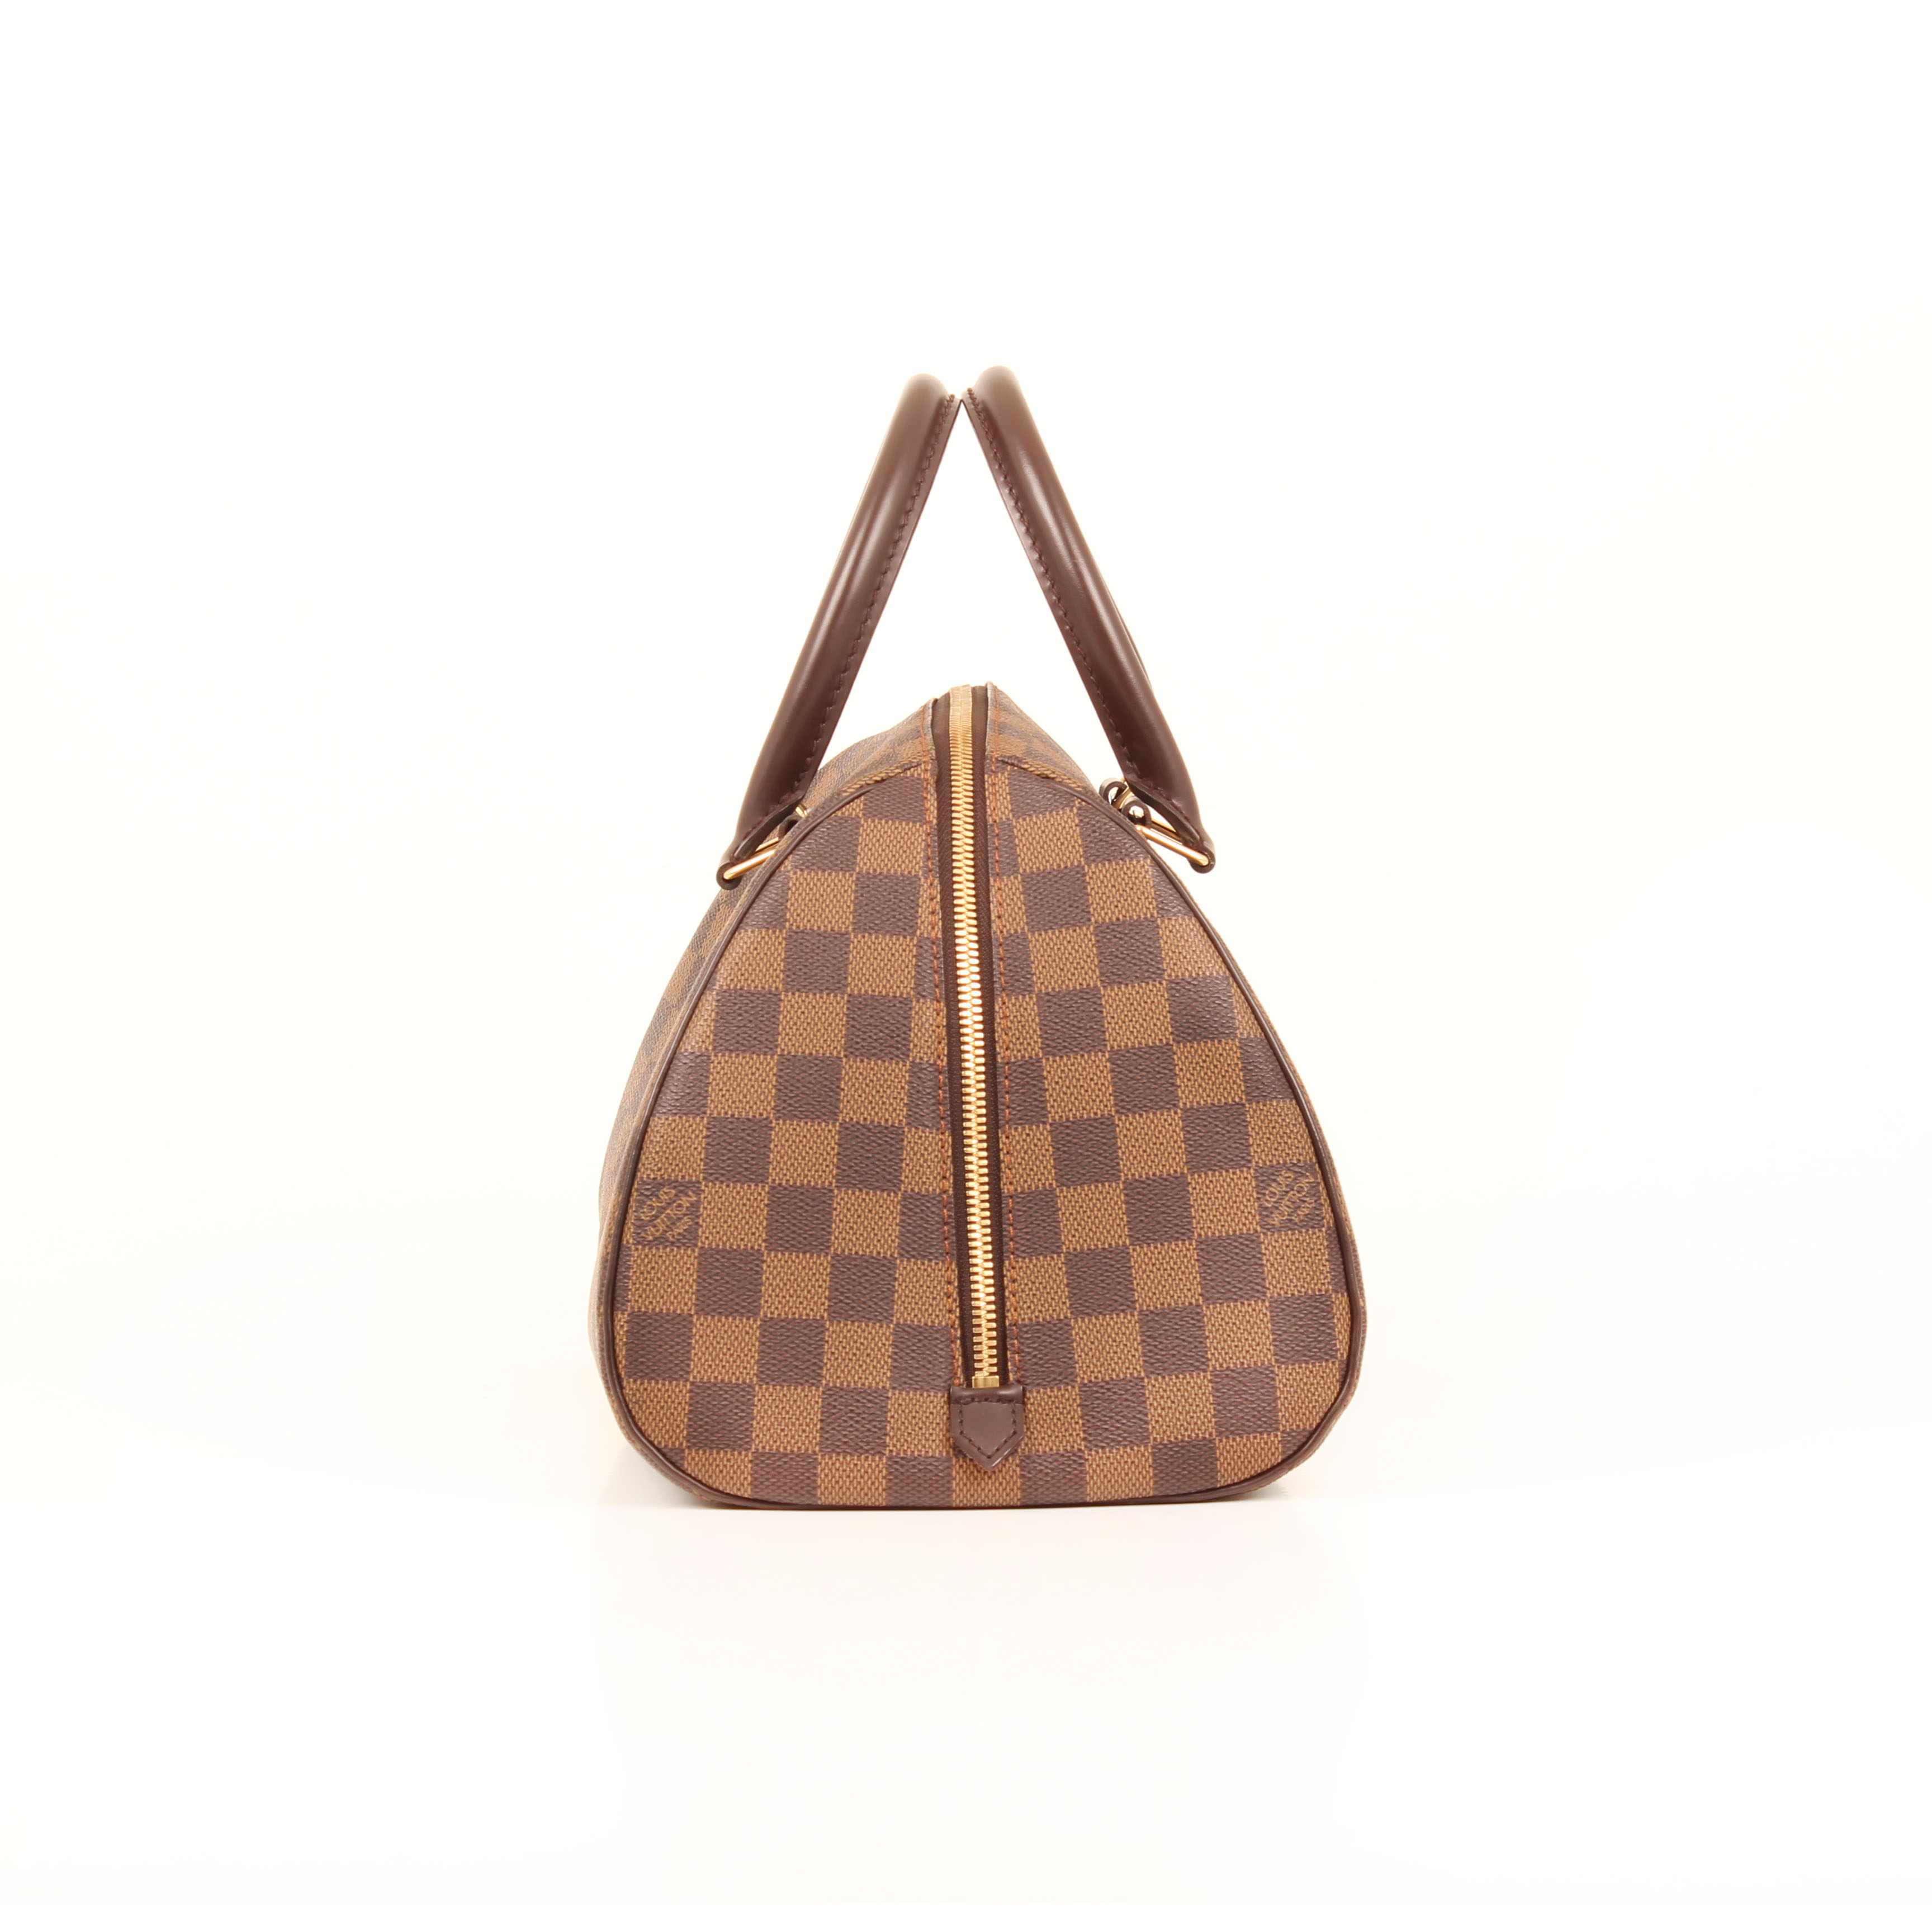 handbag louis vuitton ribera damier ebene side